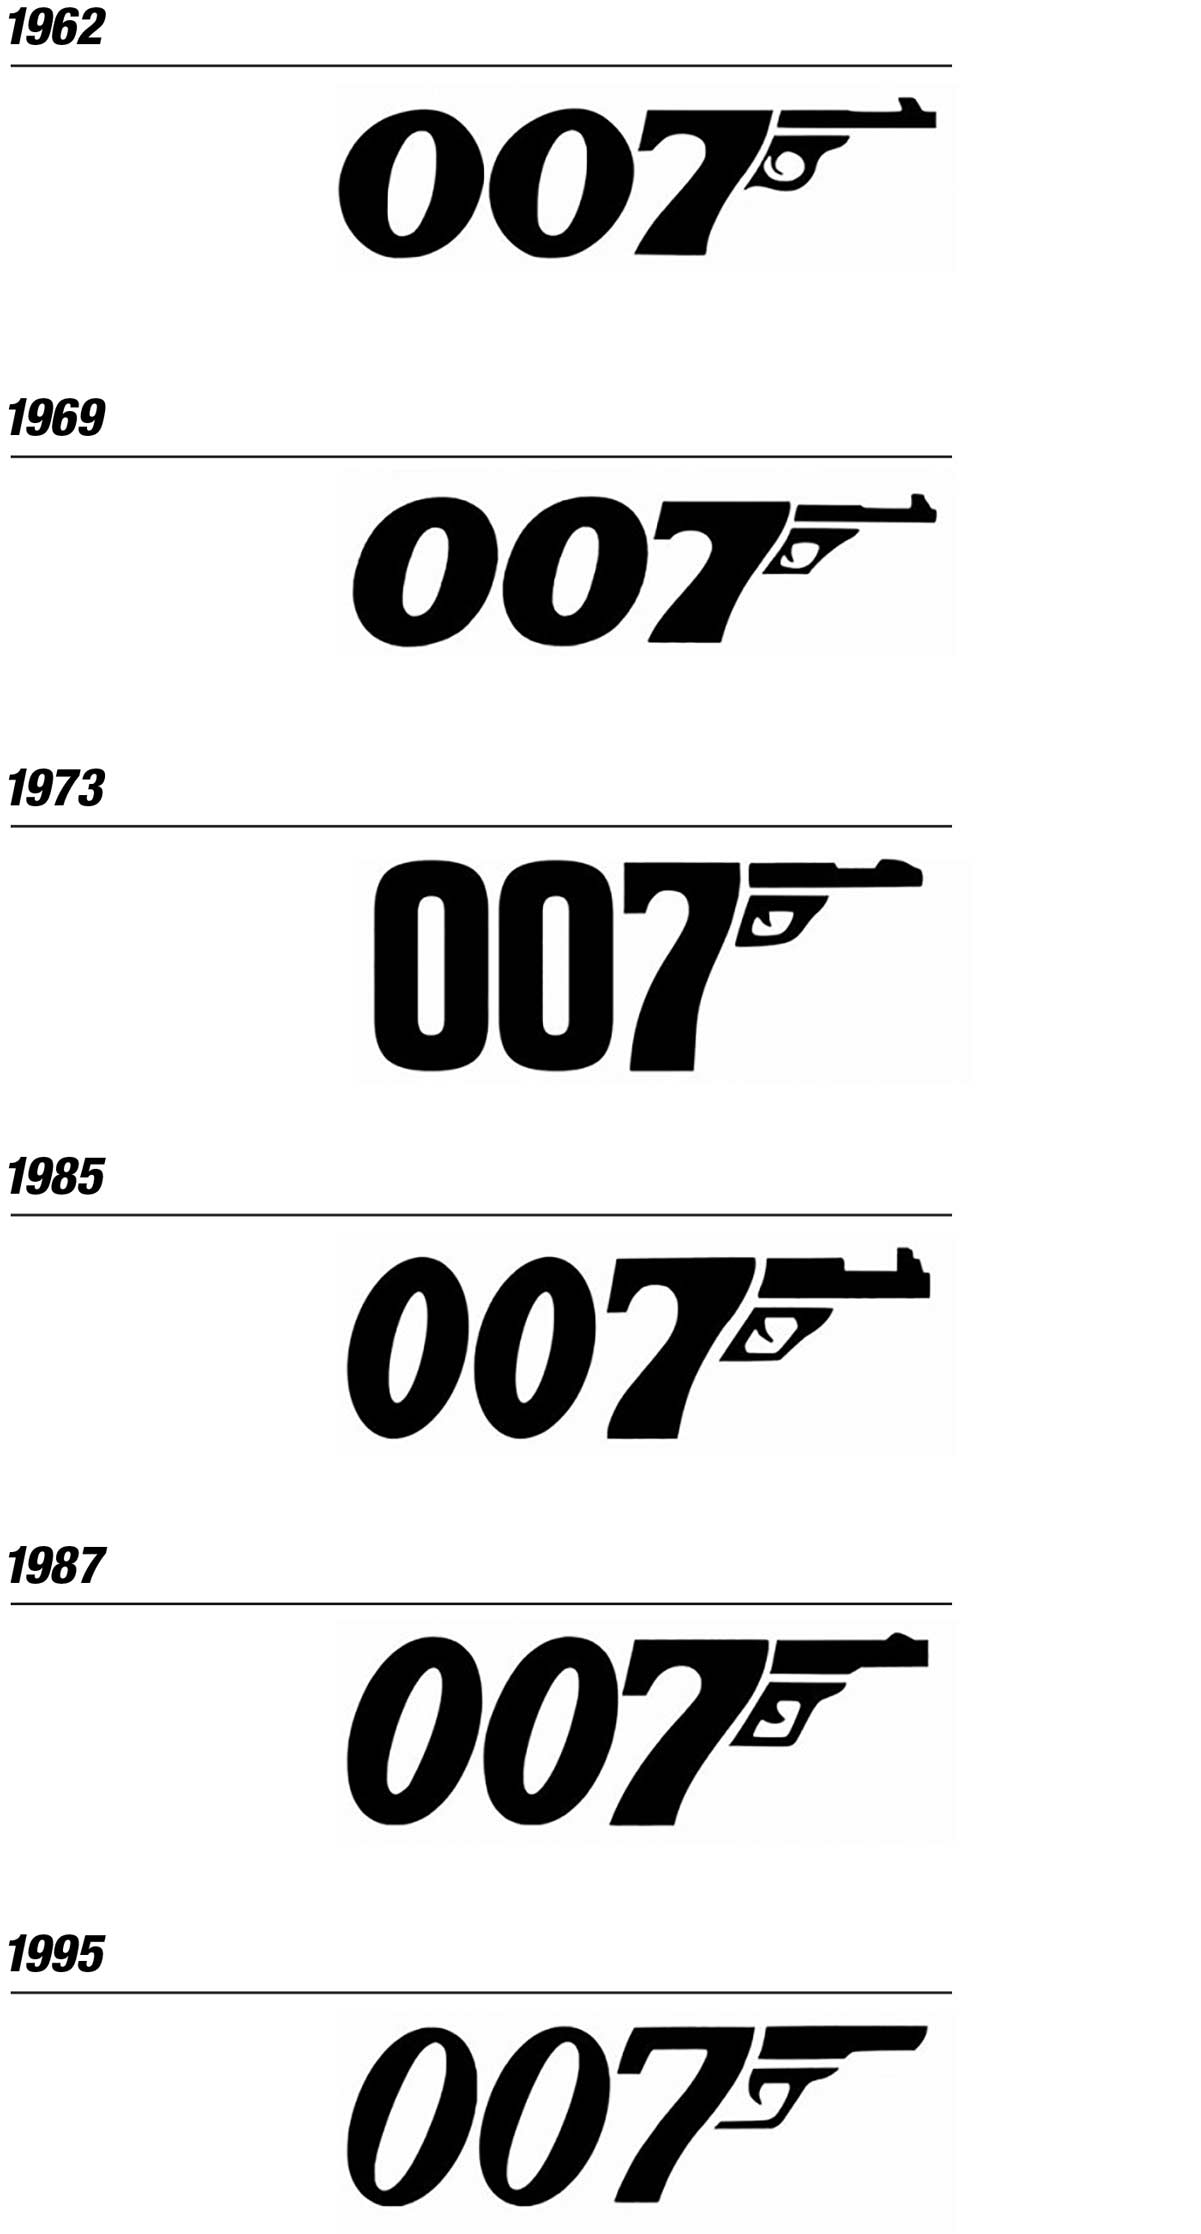 the types of james bond films film studies essay To what extent do bond films follow a standard formula to deliver pleasure  film concludes with 'james bond  types of people who watch bond films.